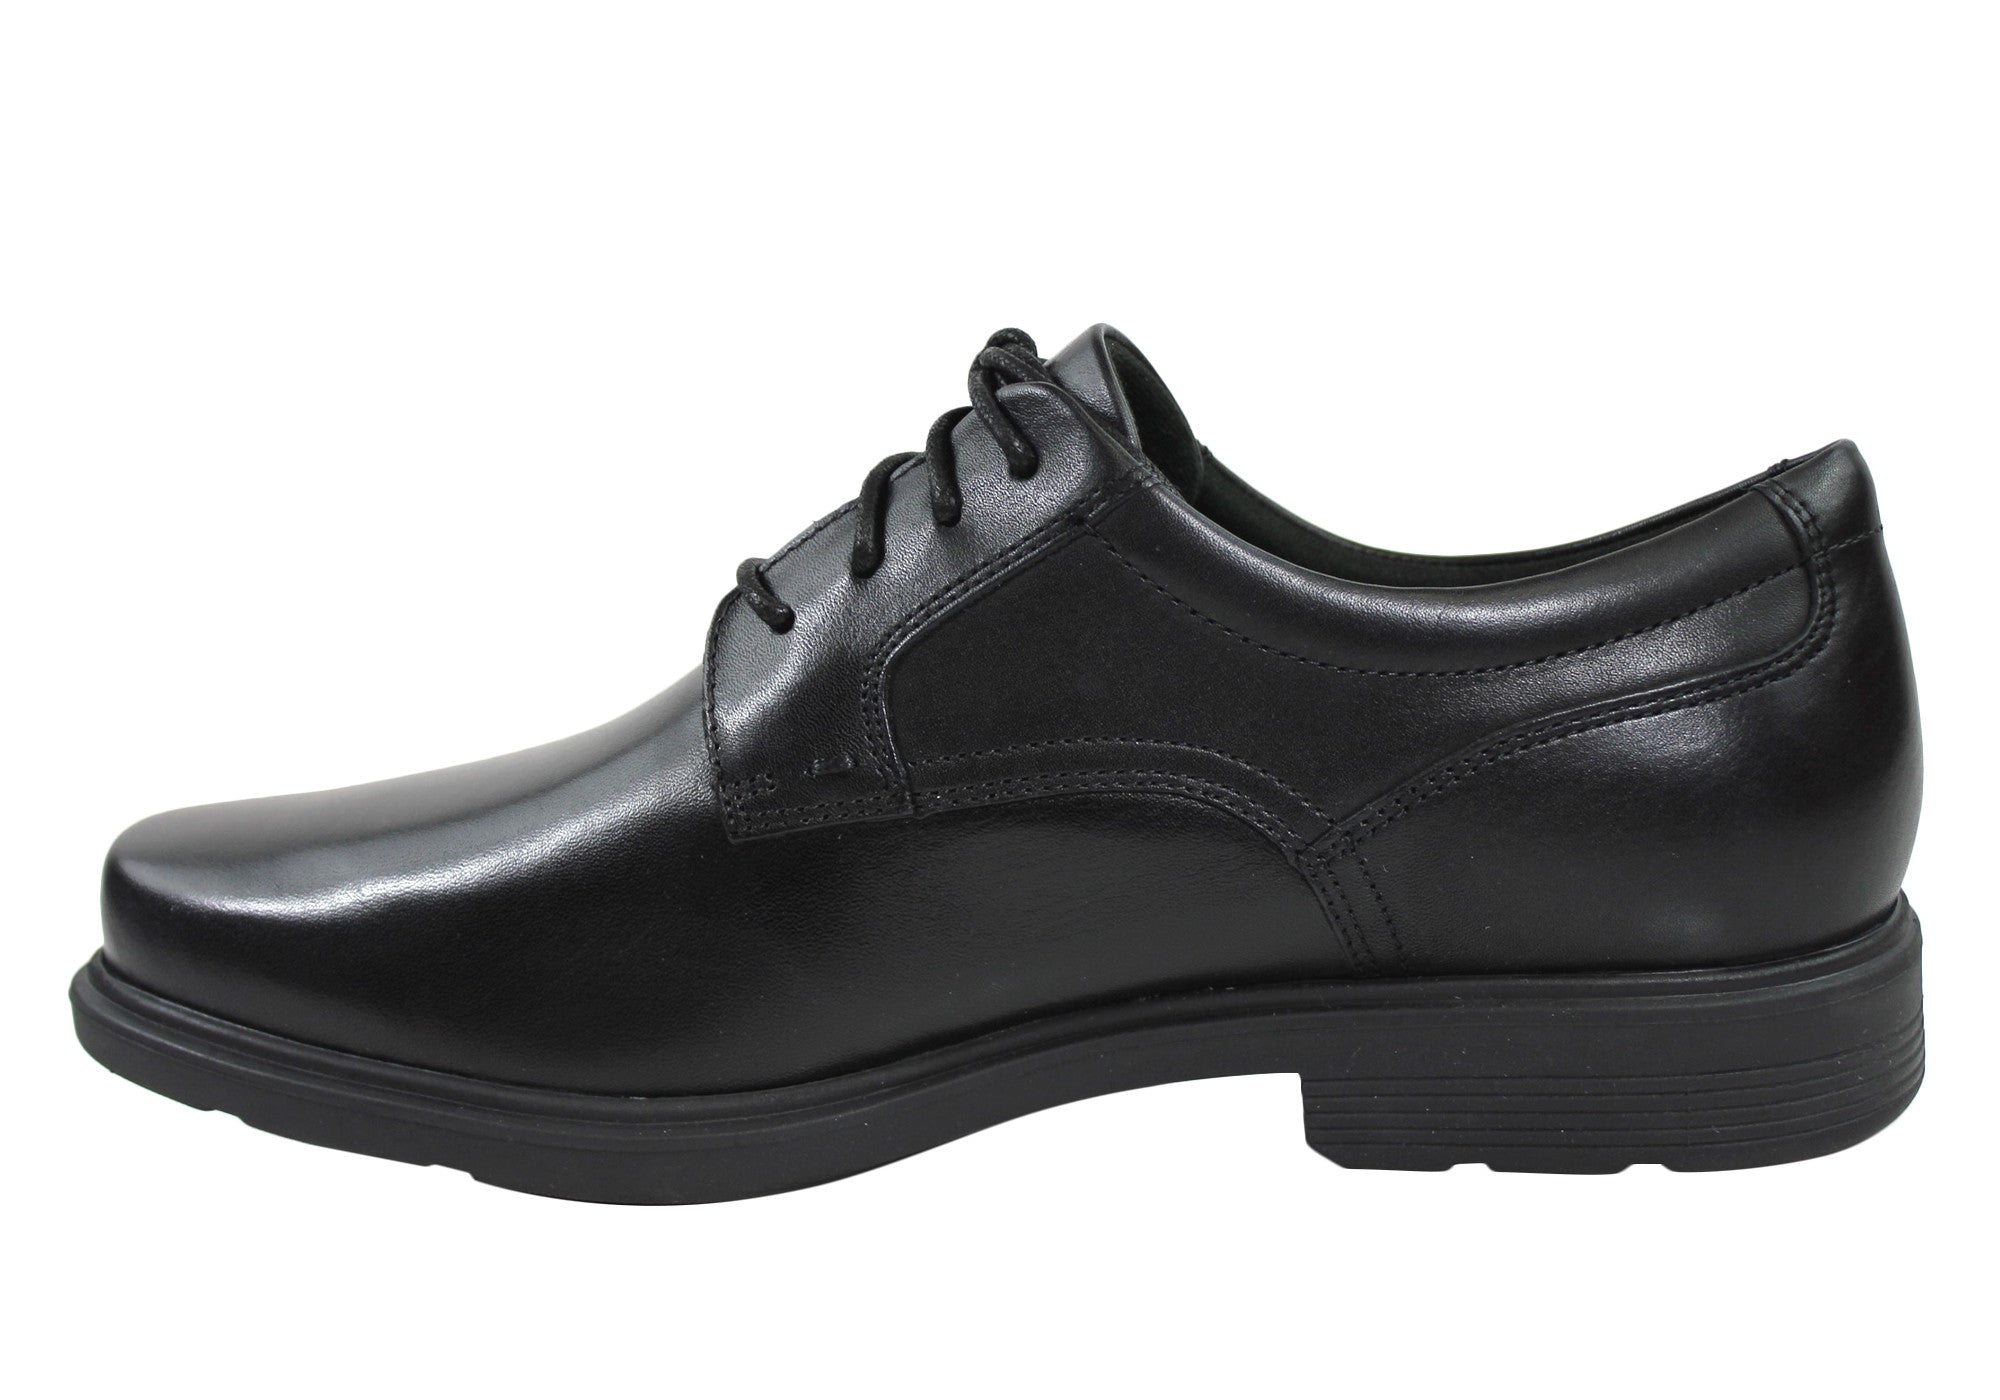 Rockport Style Tip Plain Toe Oxford Mens Dress Shoes